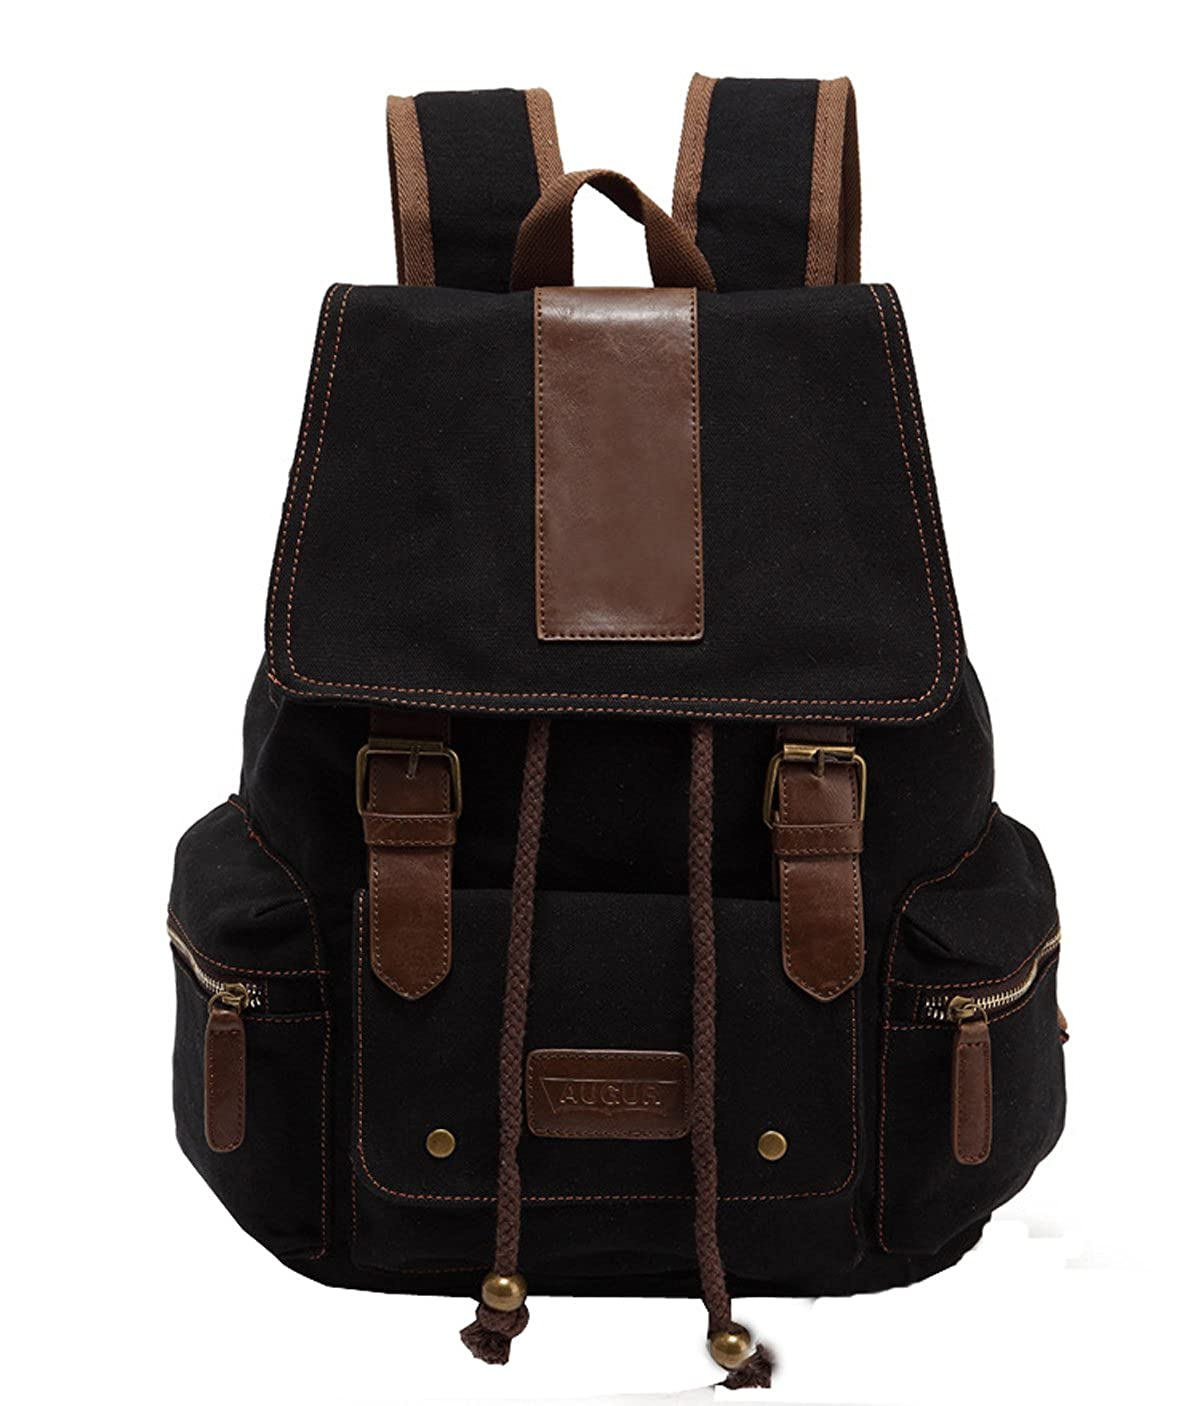 7f5c5aef61f8 Herebuy cool canvas hiking backpack school laptop backpacks for men women  black clothing jpg 1200x1406 Cool